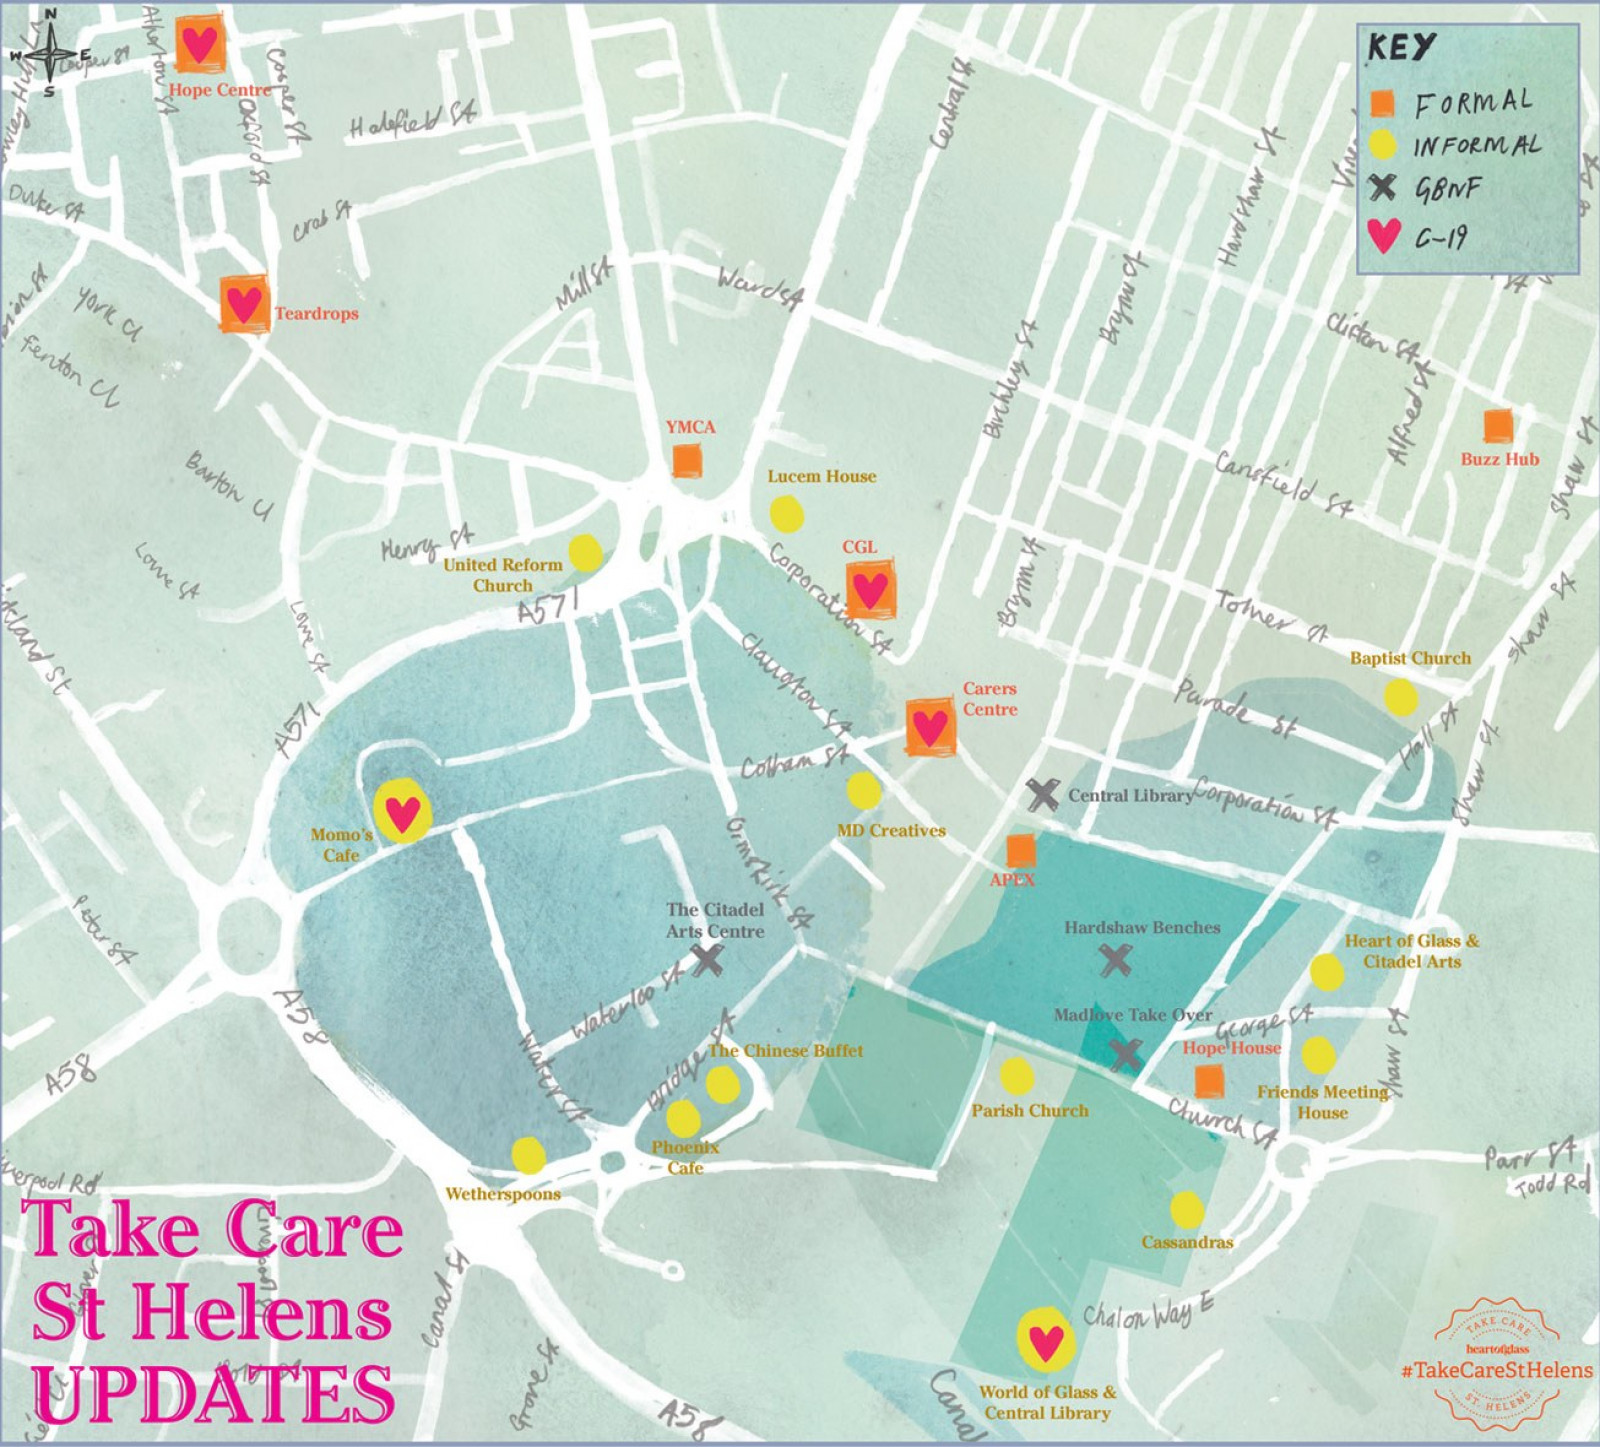 A watercolour painted map of St Helens with the words 'Take Care St Helens Updates' written in pink lettering on the bottom left corner.